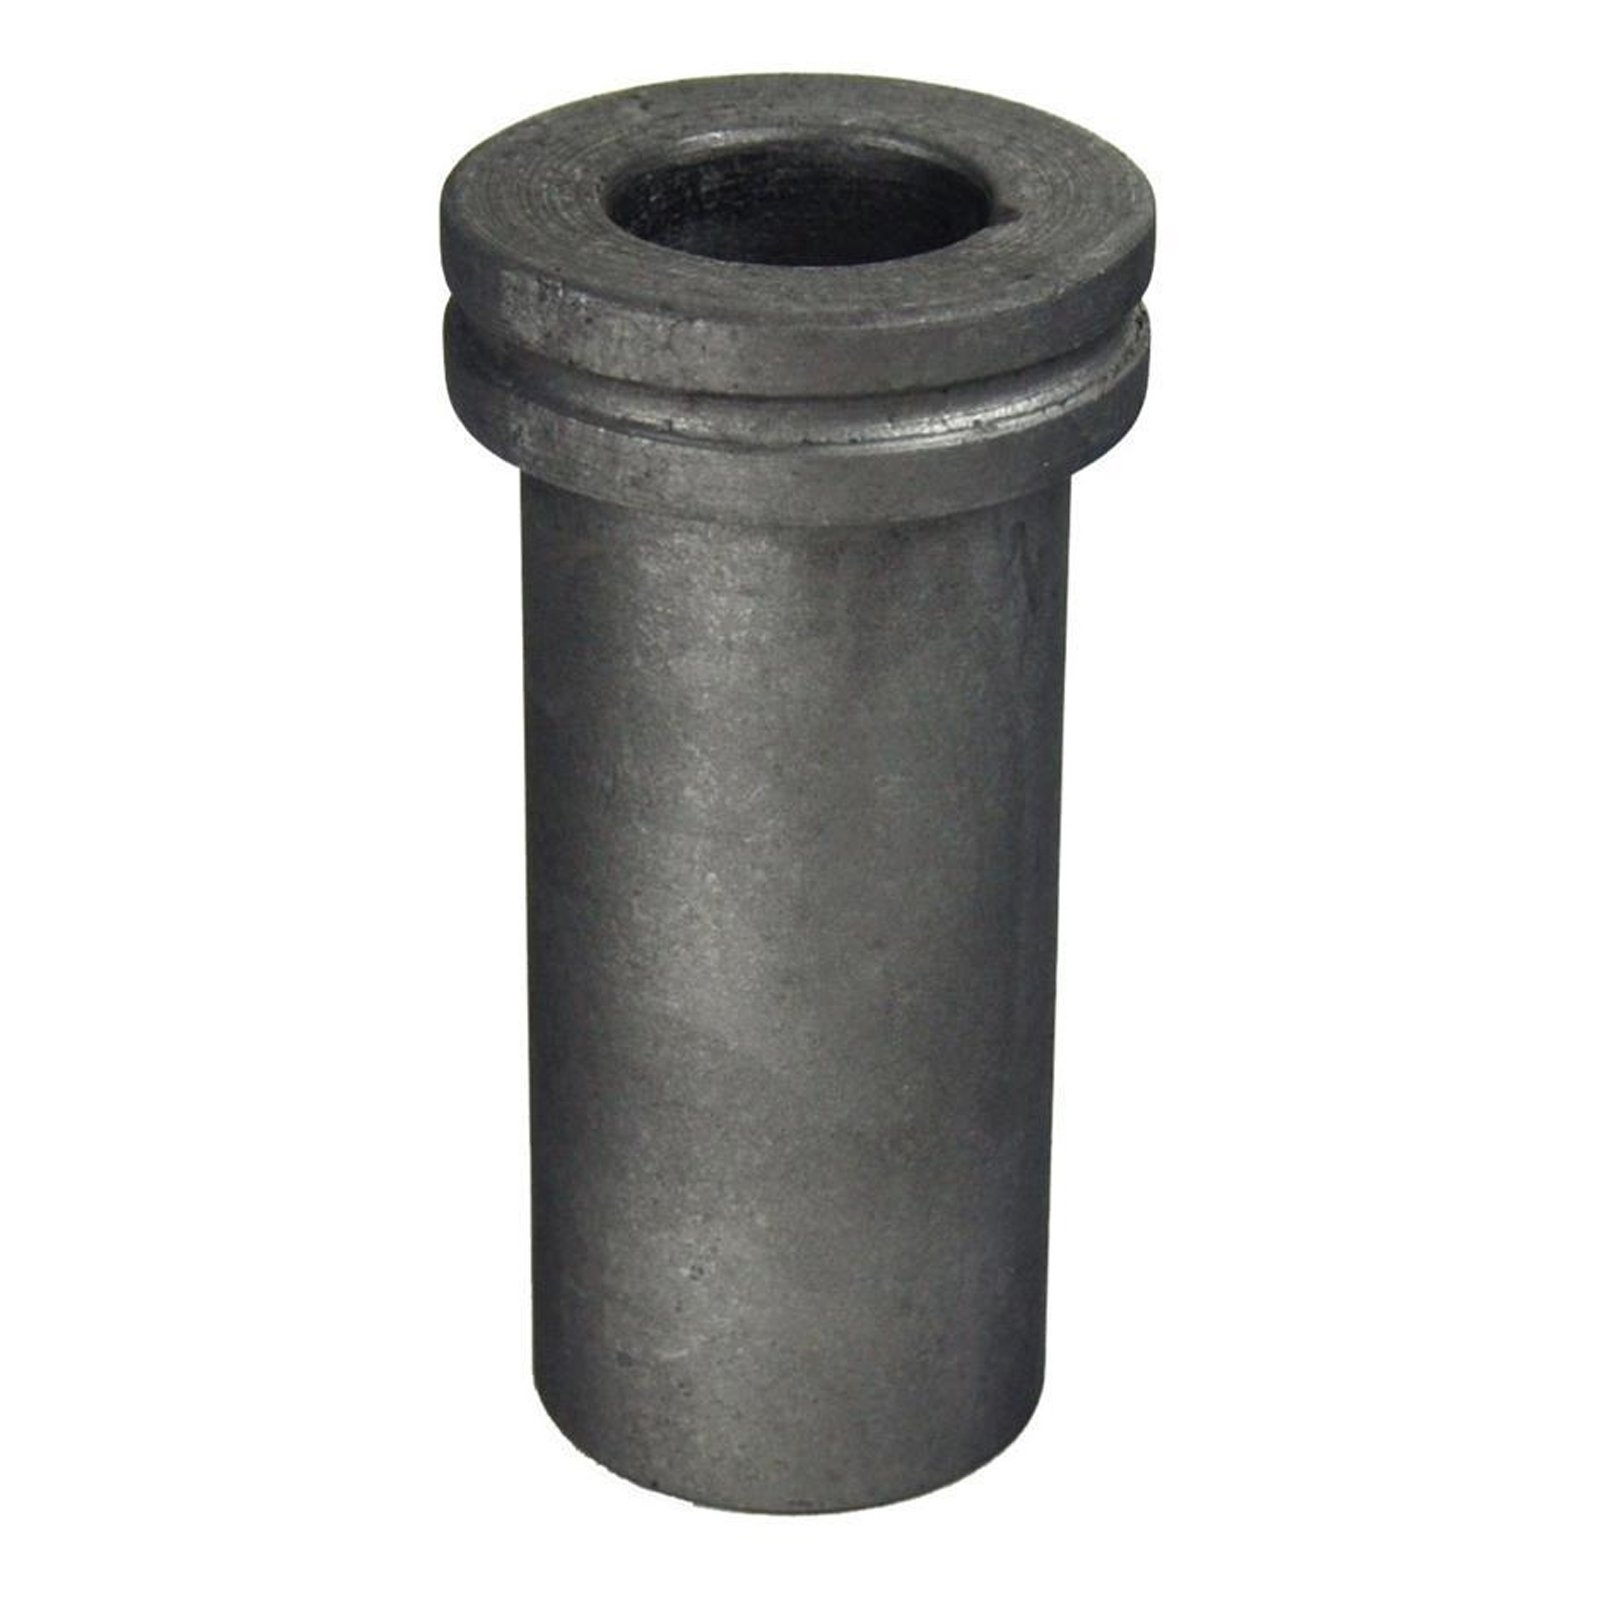 Universal Tool Graphite Crucible for Gold Melting 2.5 by 6.5 Inch